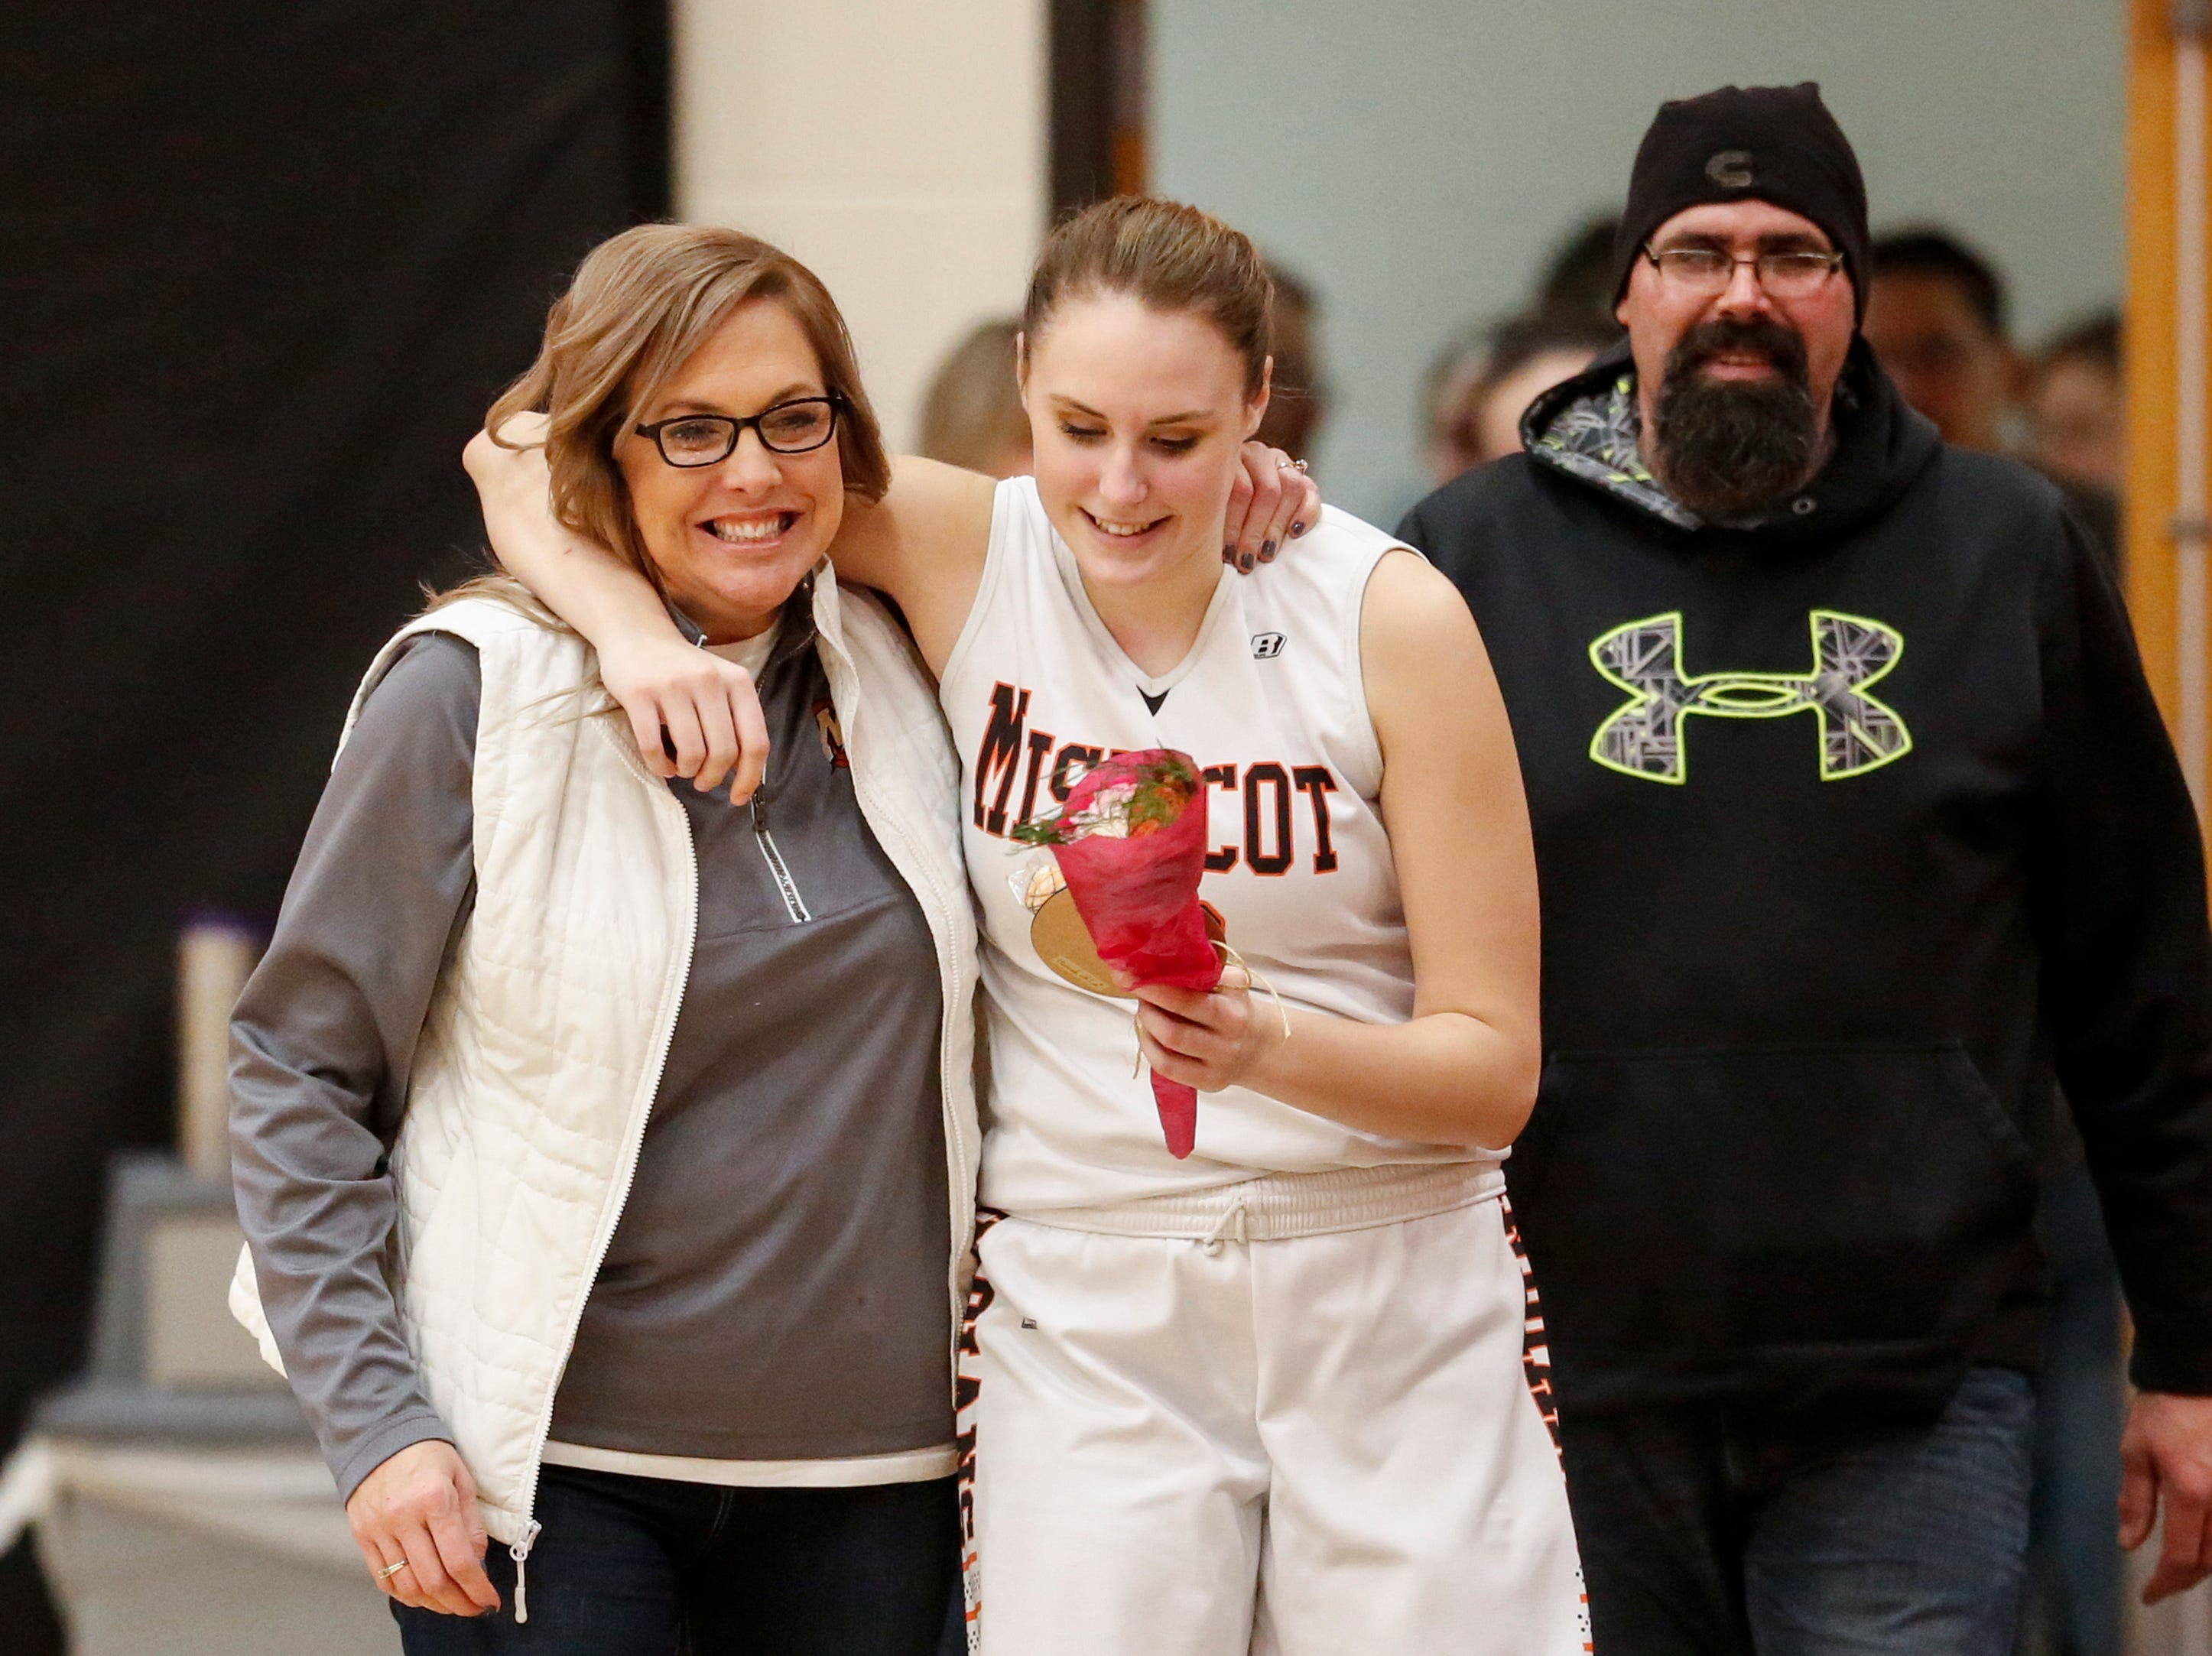 Mishicot's Dakota Krieser gives her mother a hug during parents night at Mishicot High School Friday, January 11, 2019, in Mishicot, Wis. Joshua Clark/USA TODAY NETWORK-Wisconsin